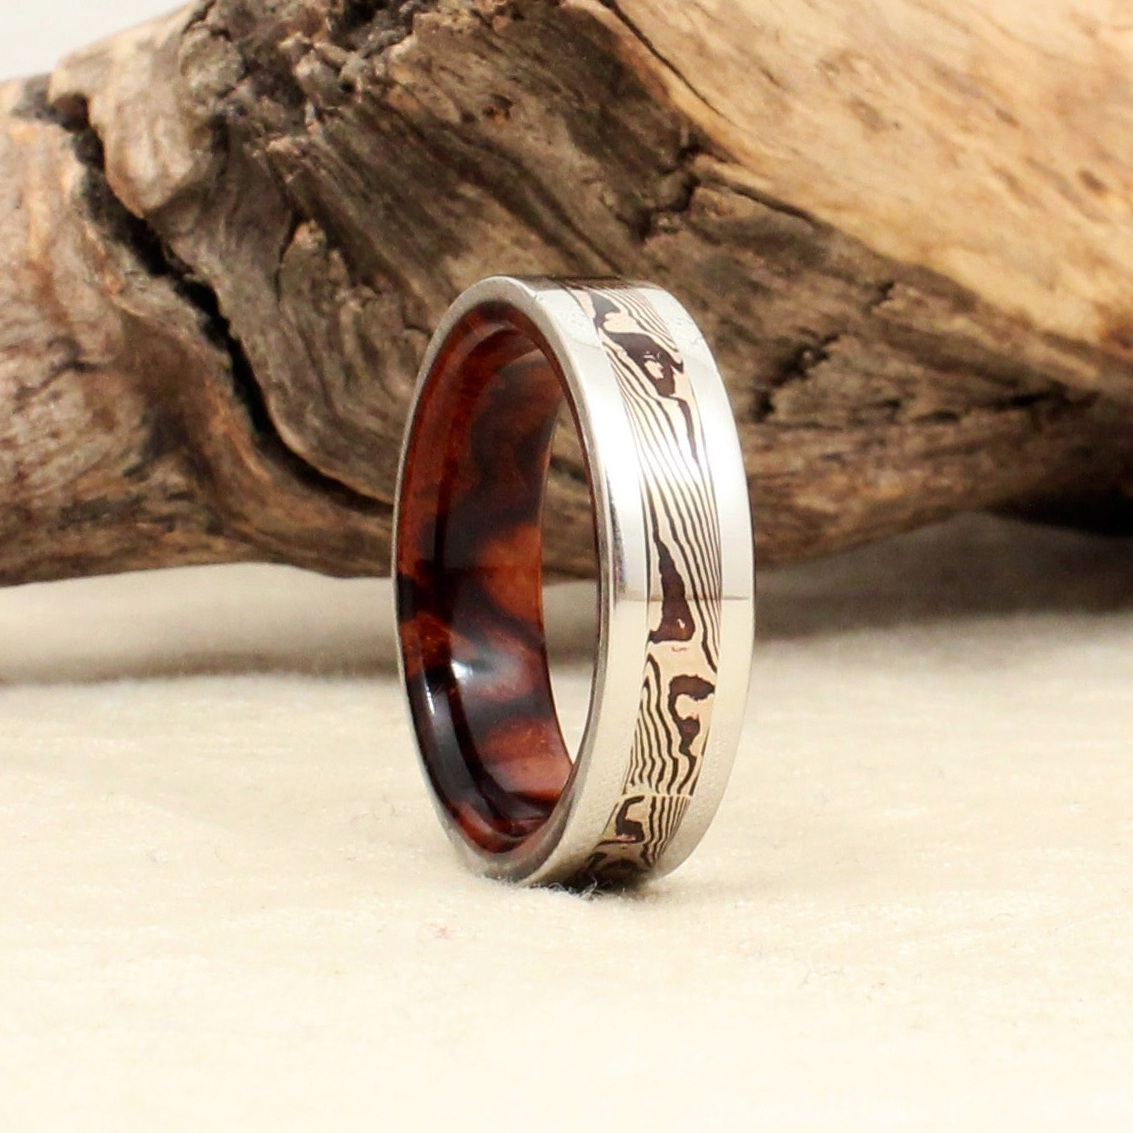 cobalt-ring-mokumegane-wedding-ring-wooden-ring-desert-ironwood-wedgewood.jpg